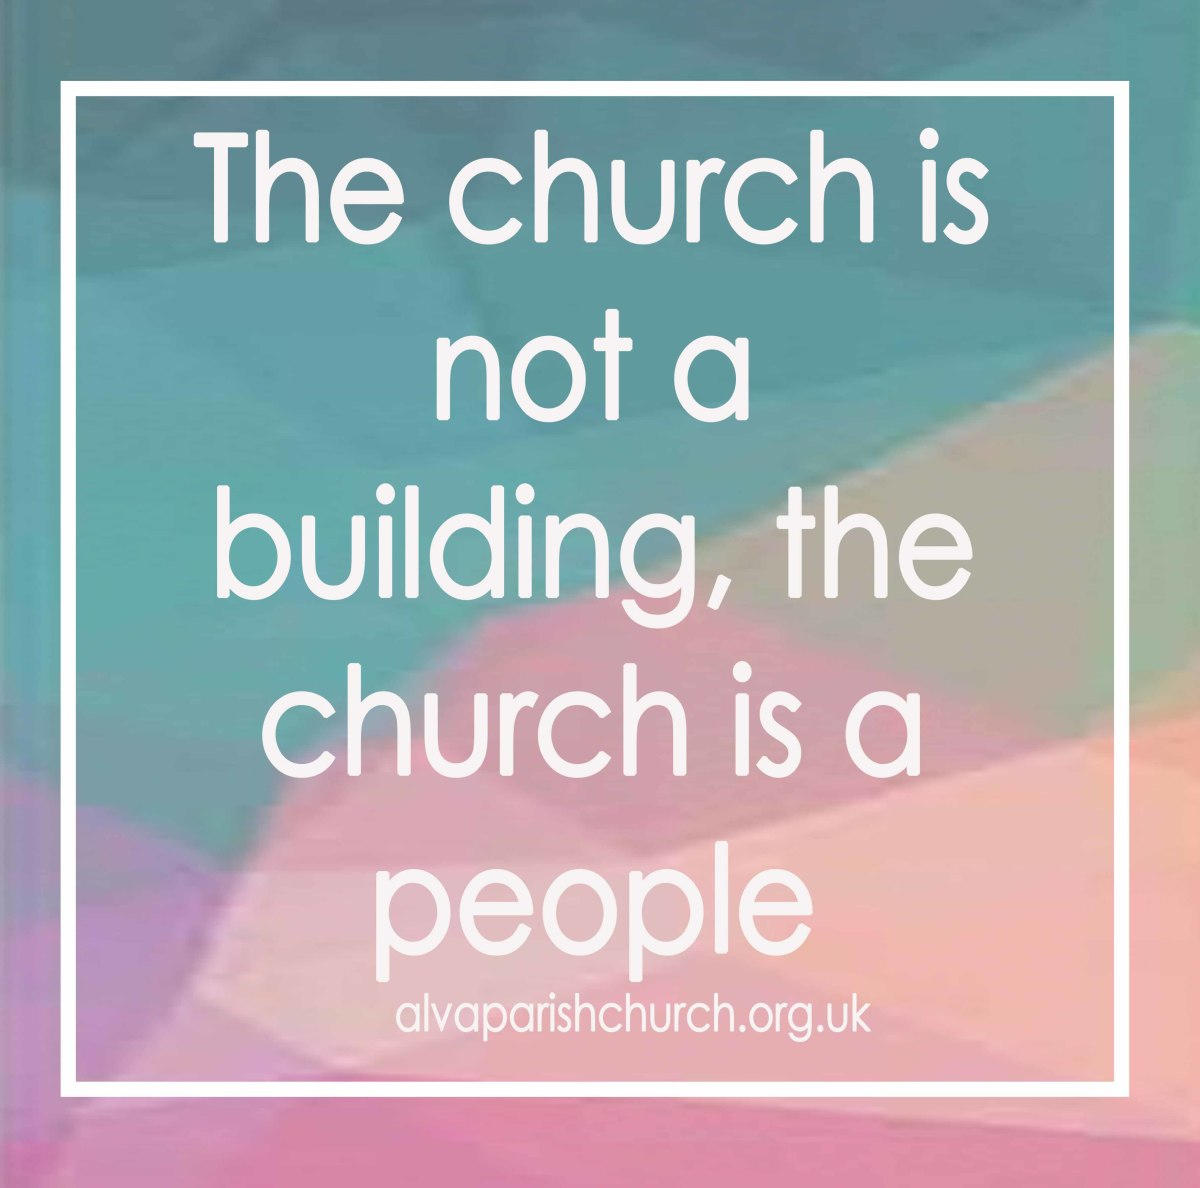 The church is within you